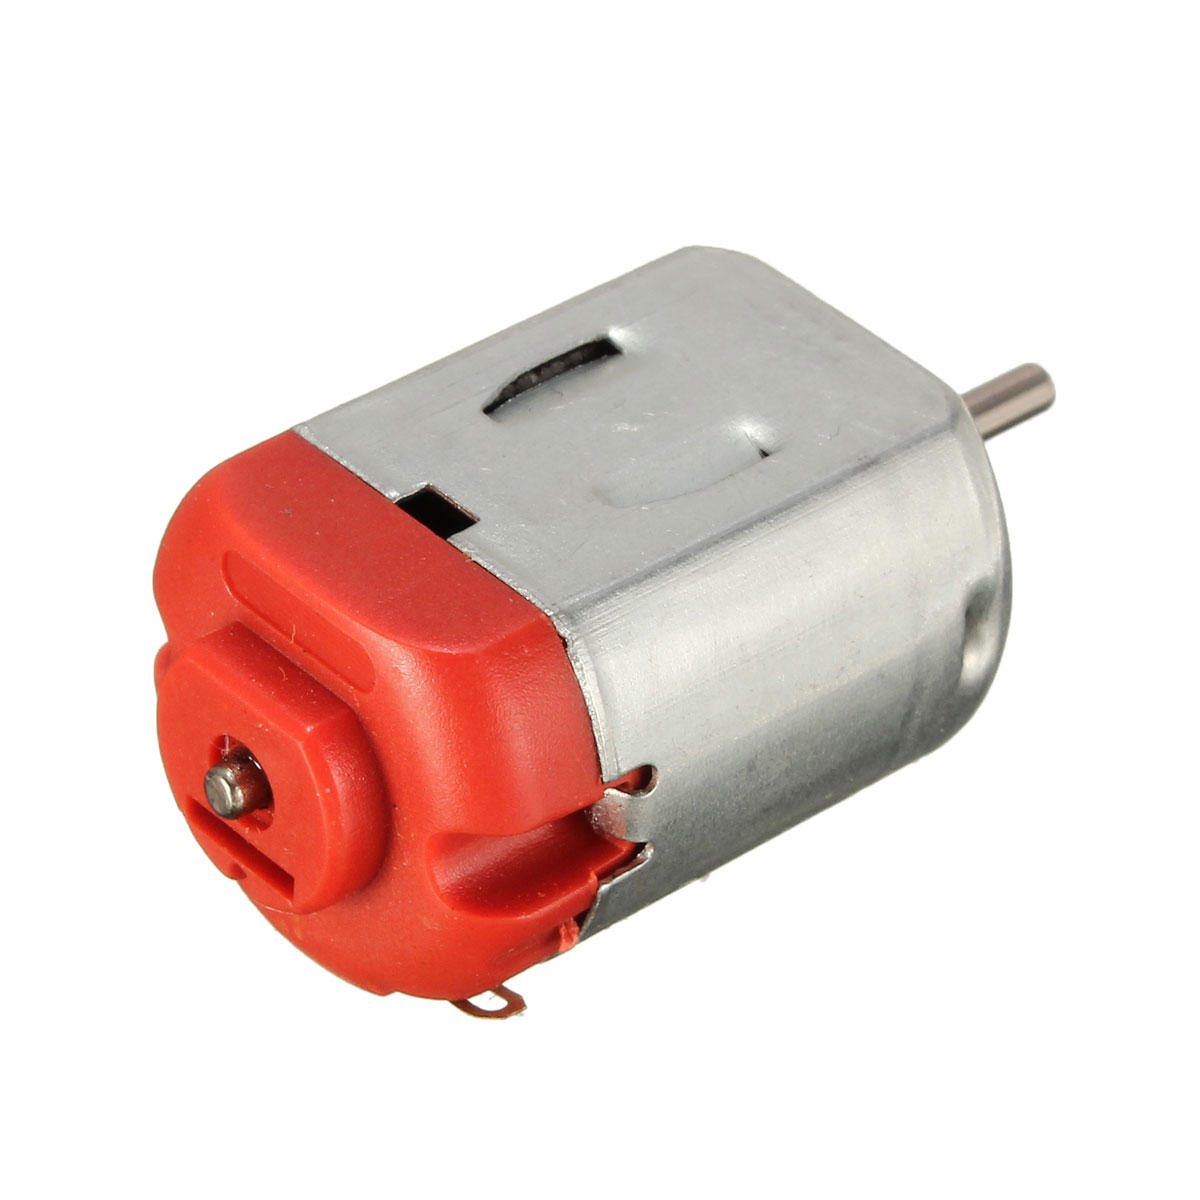 8000 RPM 3-6V DC 0.35-0.4A R130 Micro Motor, Banggood  - buy with discount